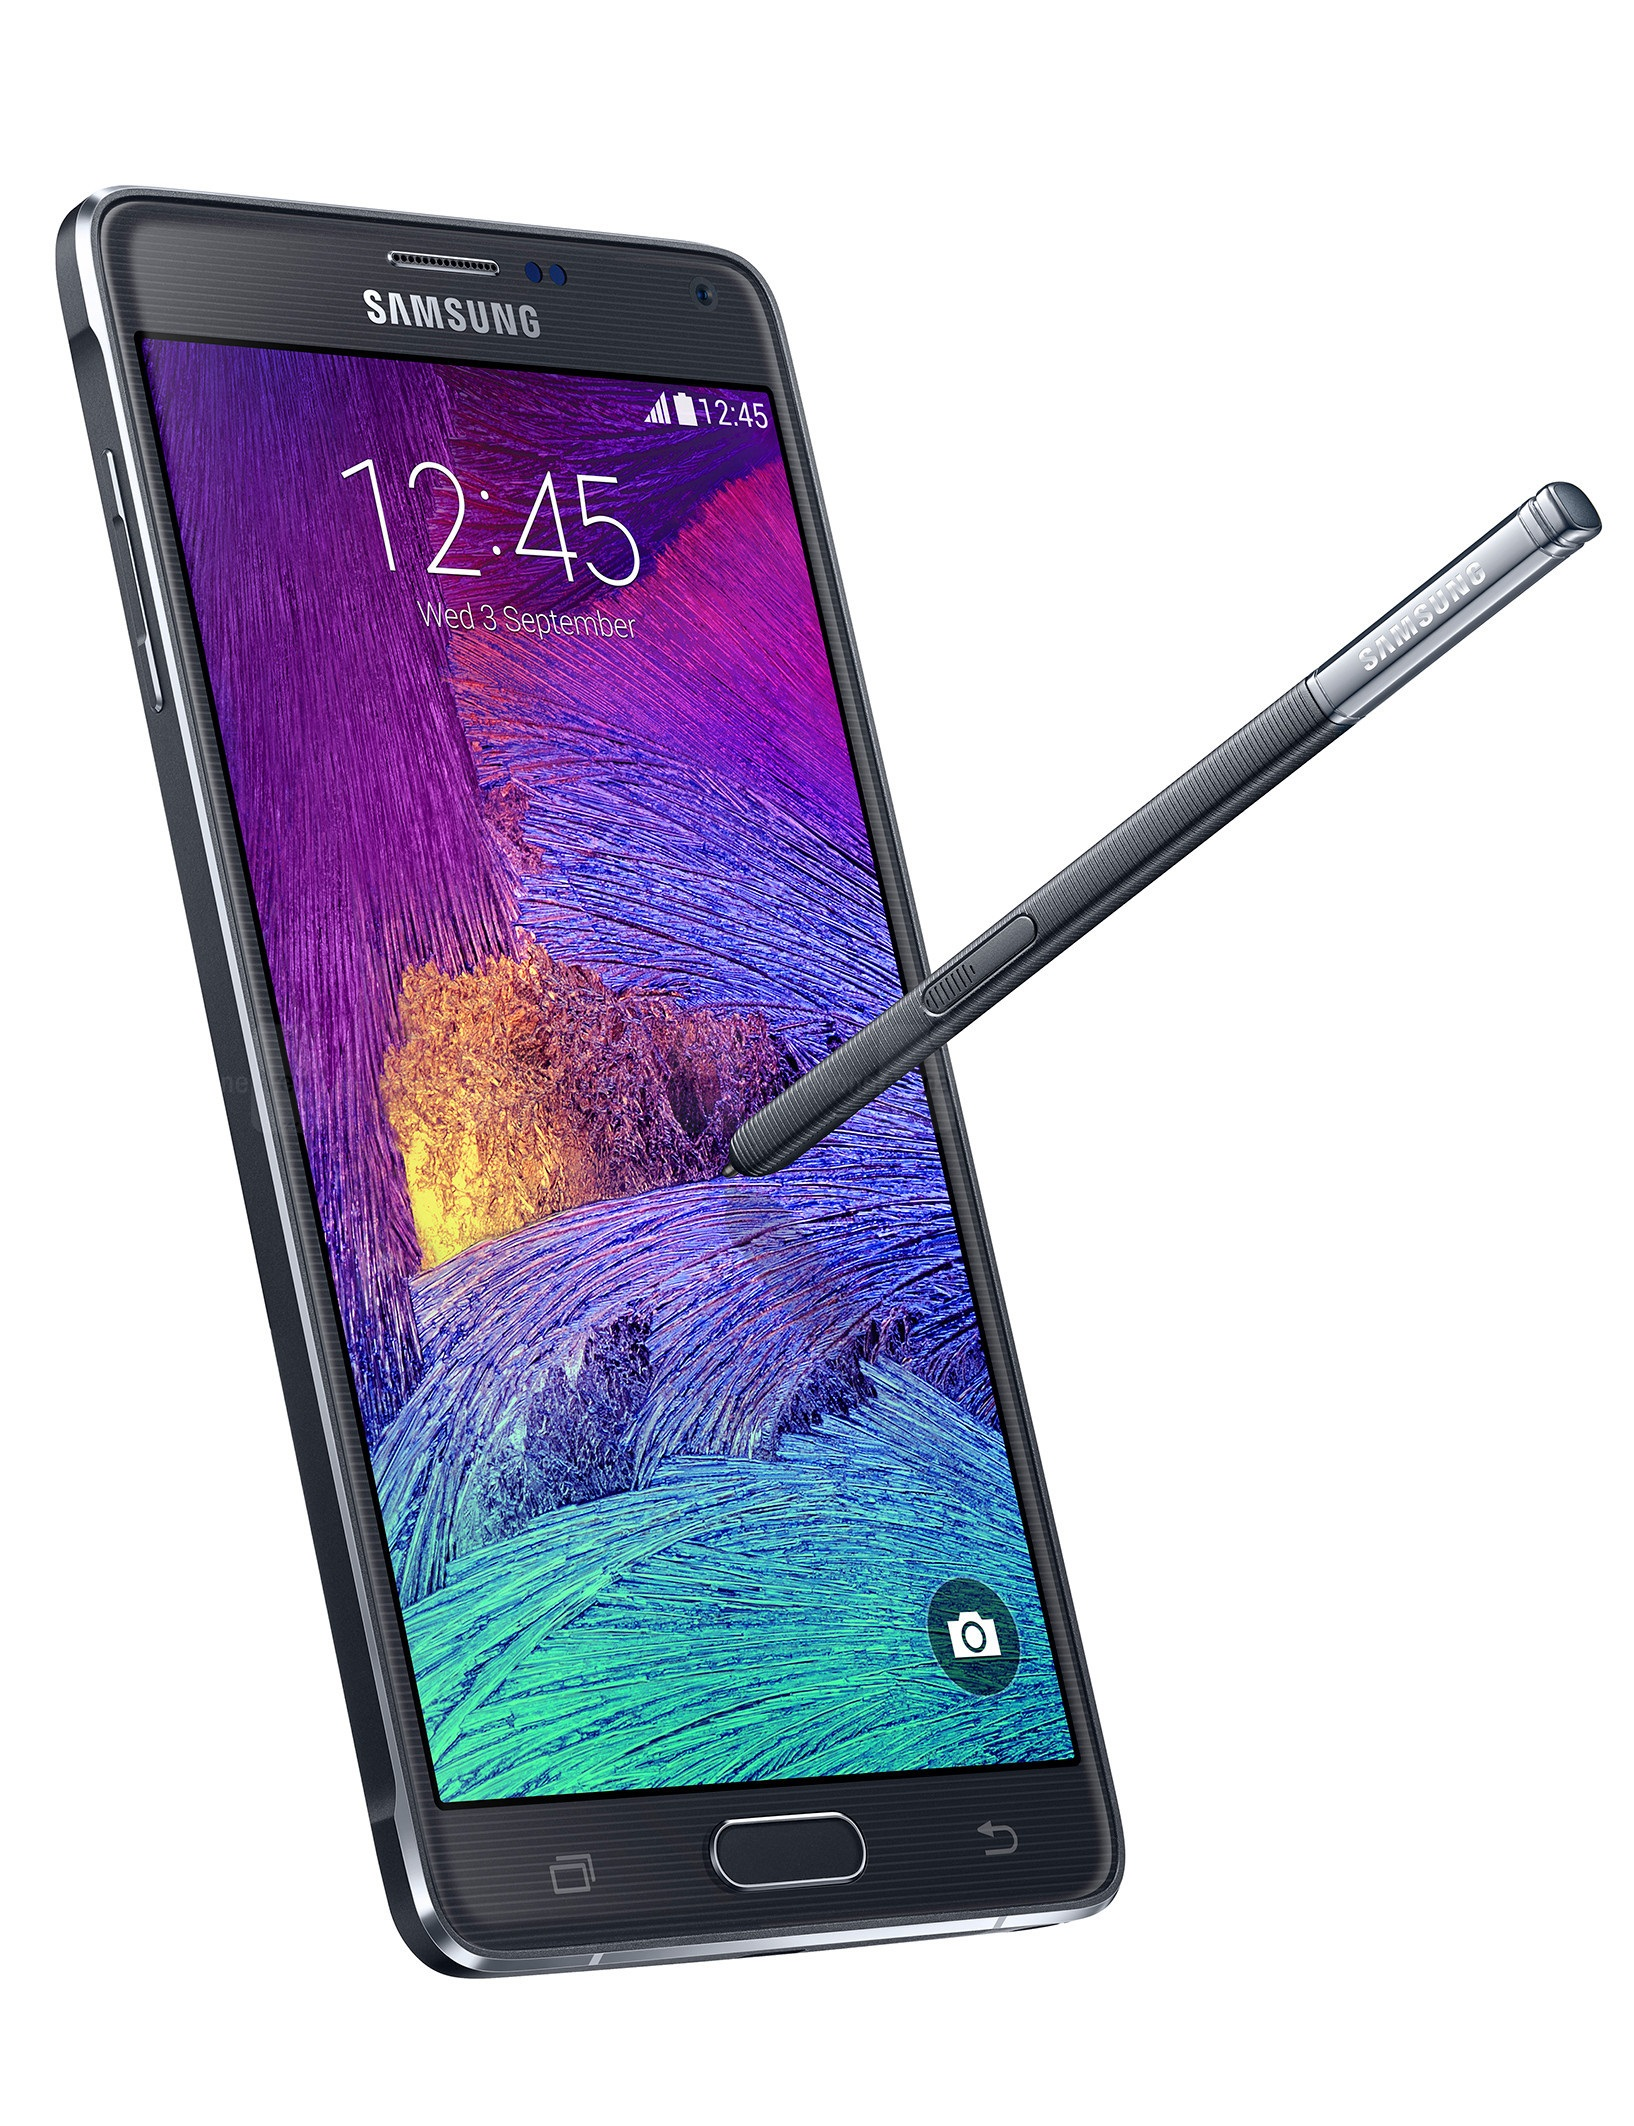 samsung galaxy note 4 sharper image. Black Bedroom Furniture Sets. Home Design Ideas